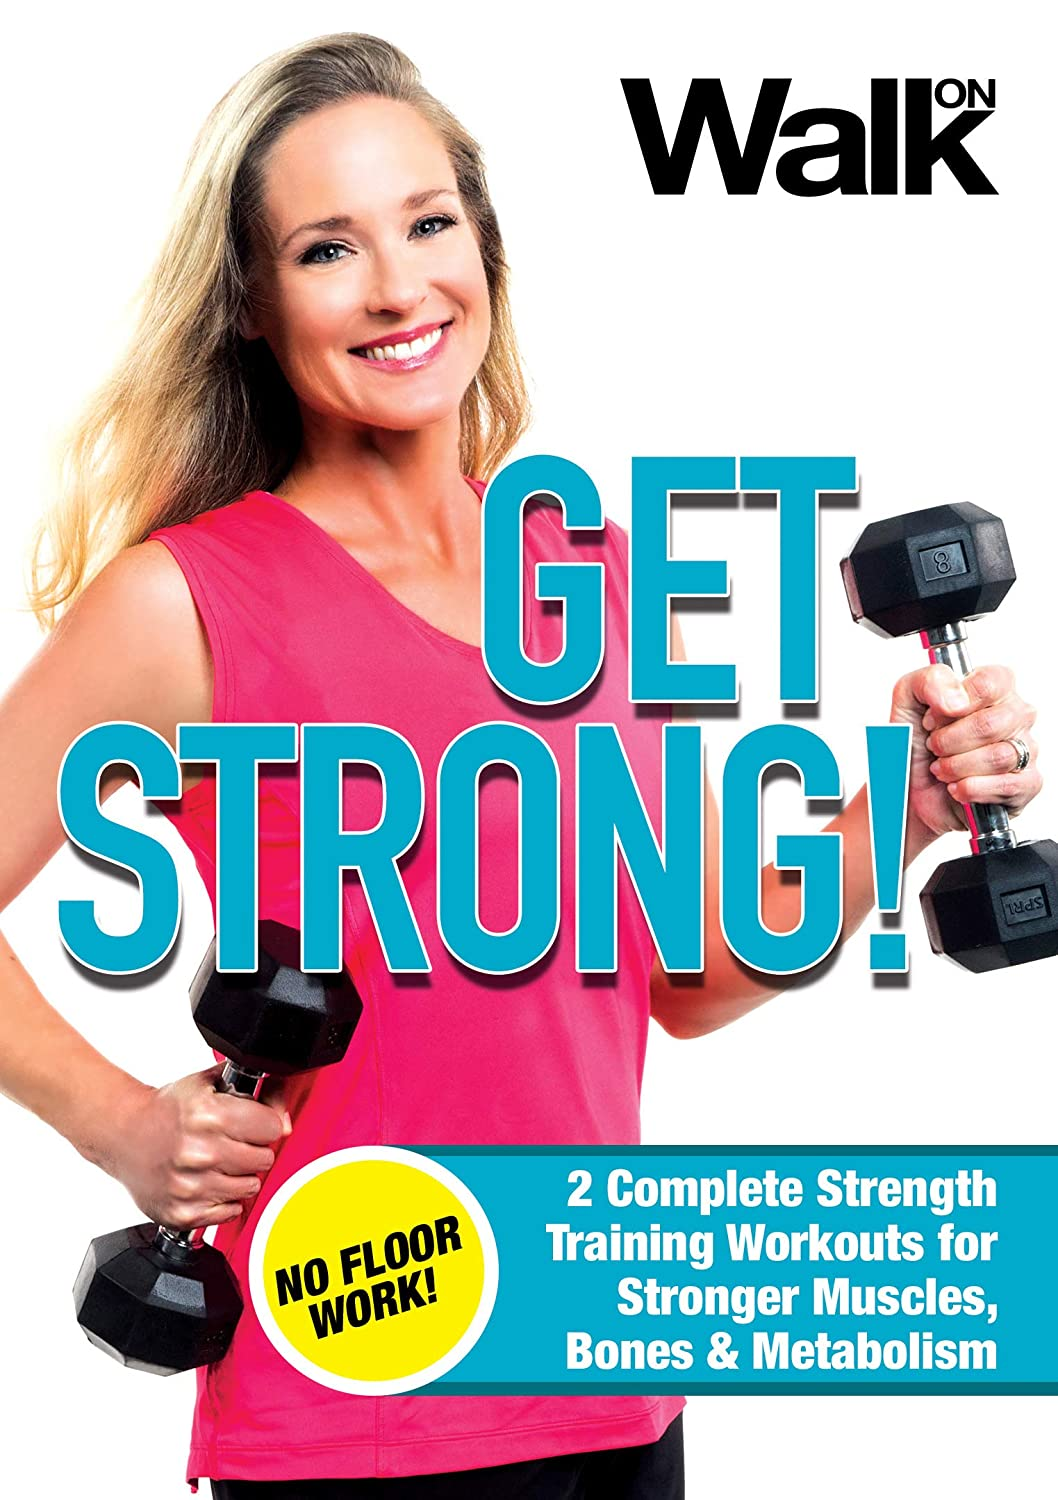 Walk On: Get Strong safety 2 Complete Floor Free Strength Traini Work 2021 autumn and winter new